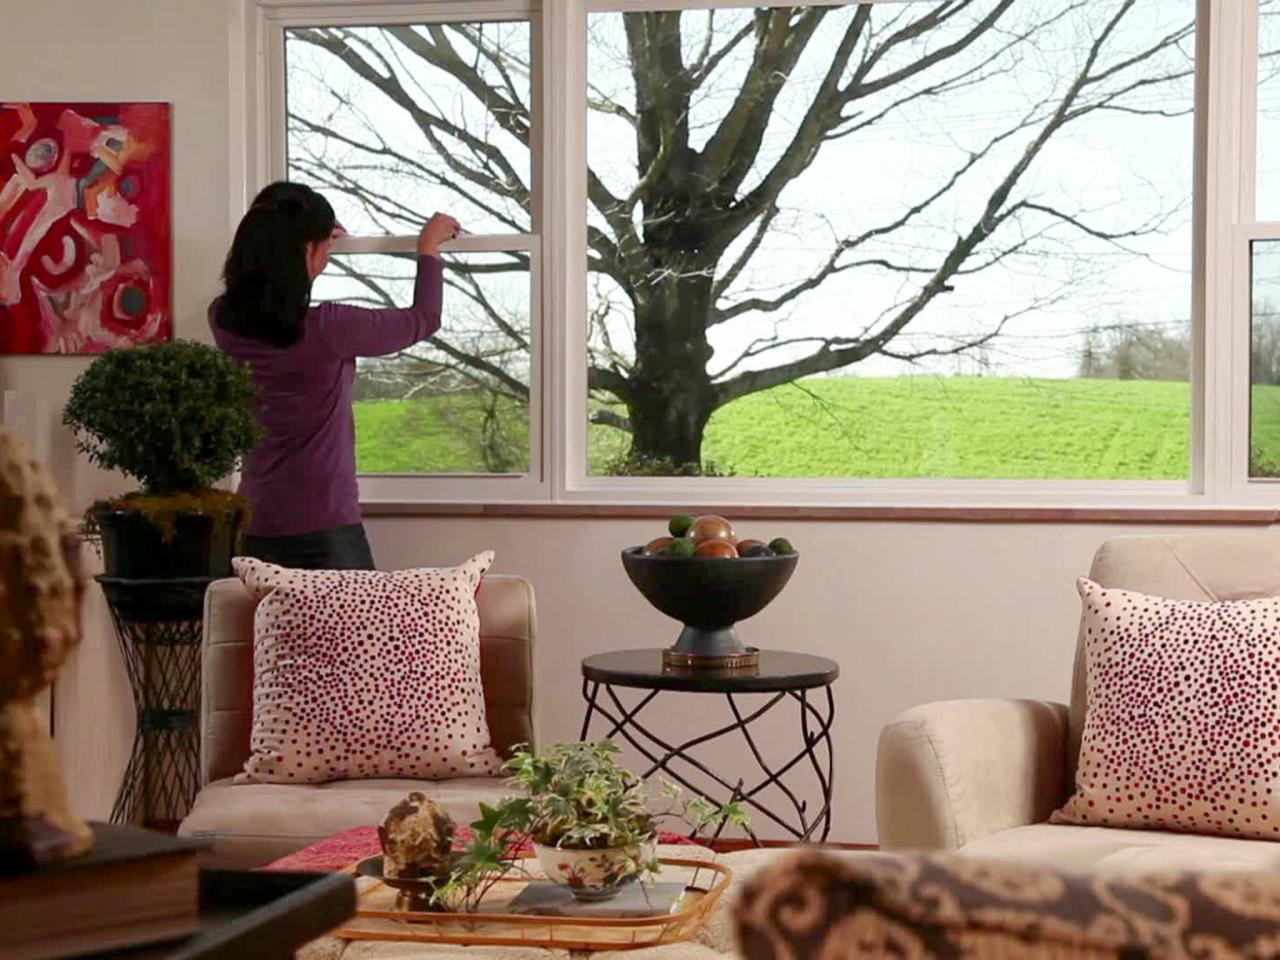 Getting the Best Windows for a Home Installed